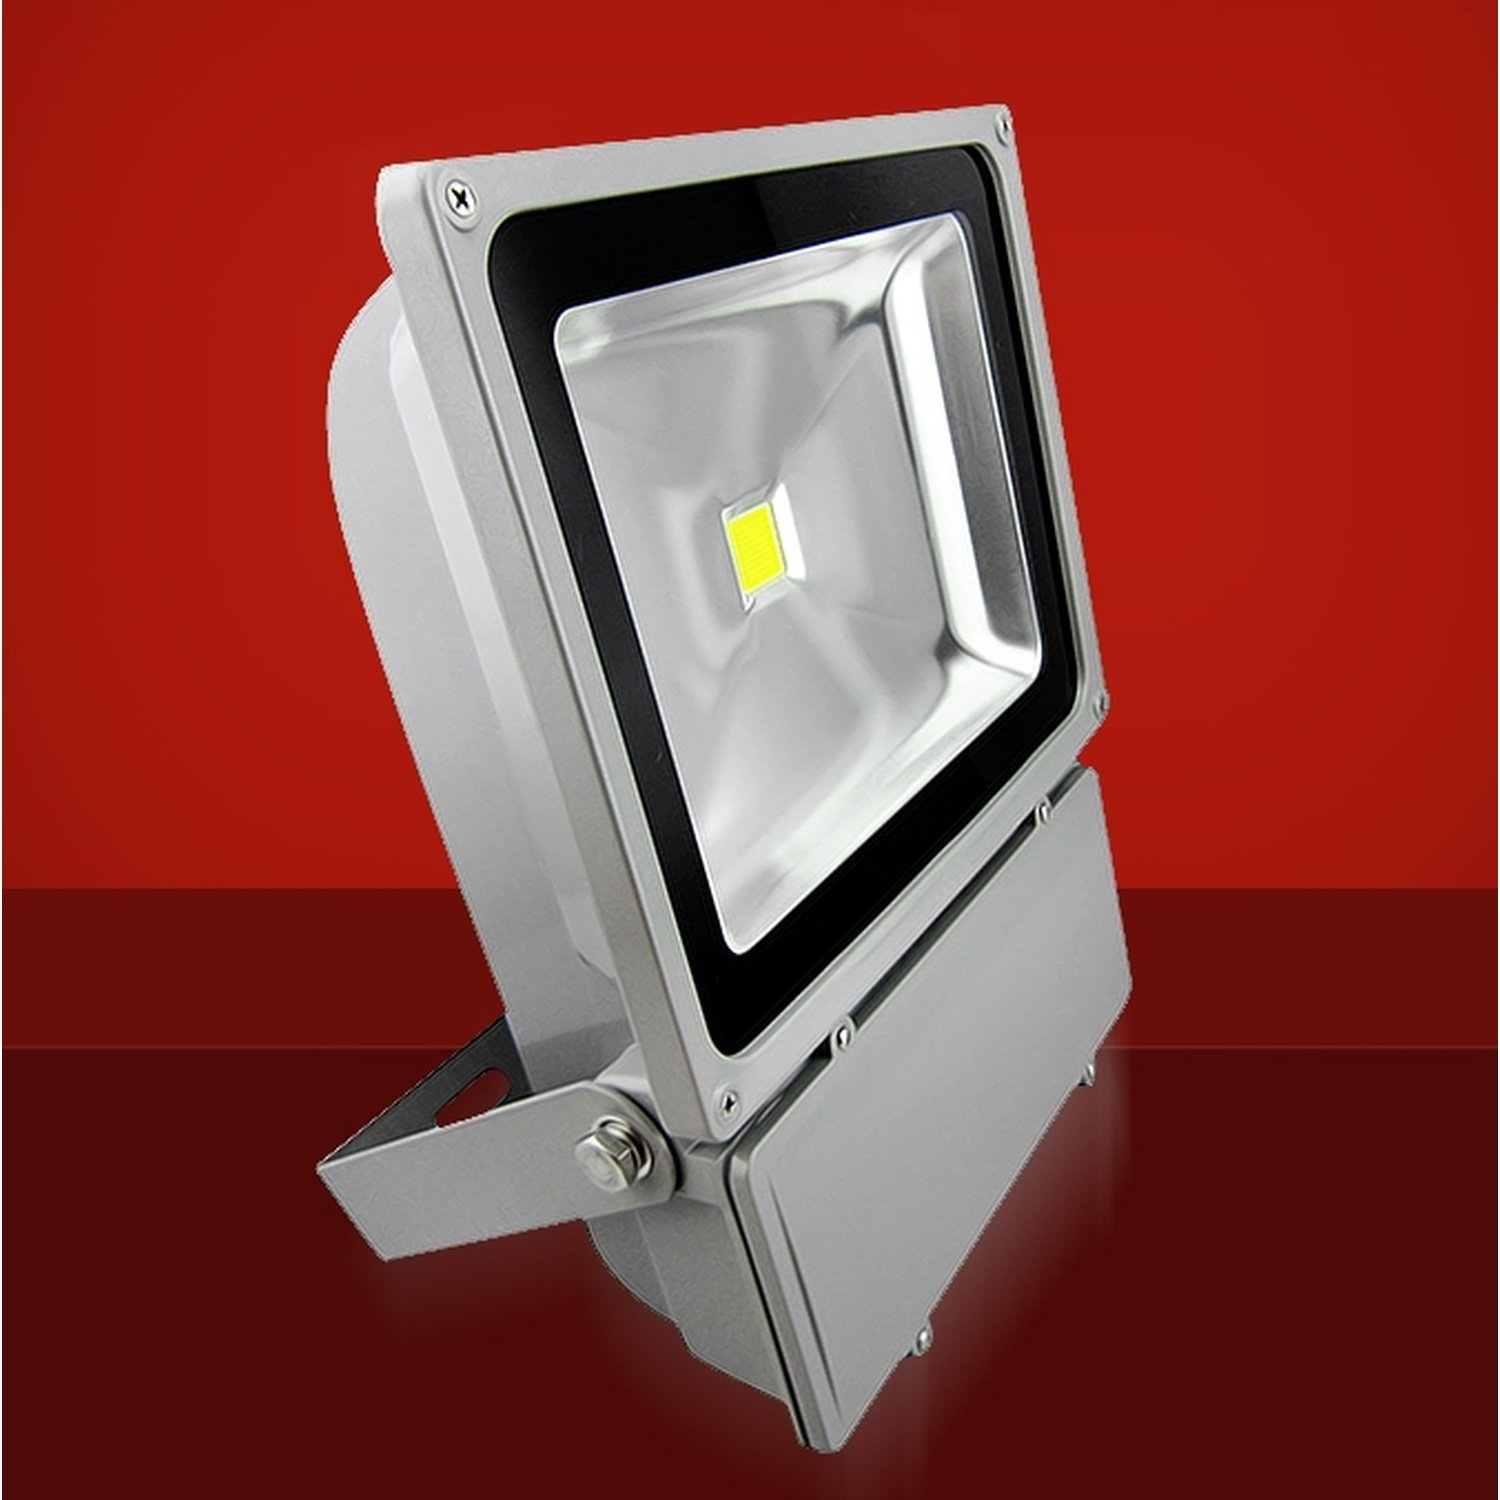 LED Spotlight Spotlight 100W 6500K Bright Light Topical Power